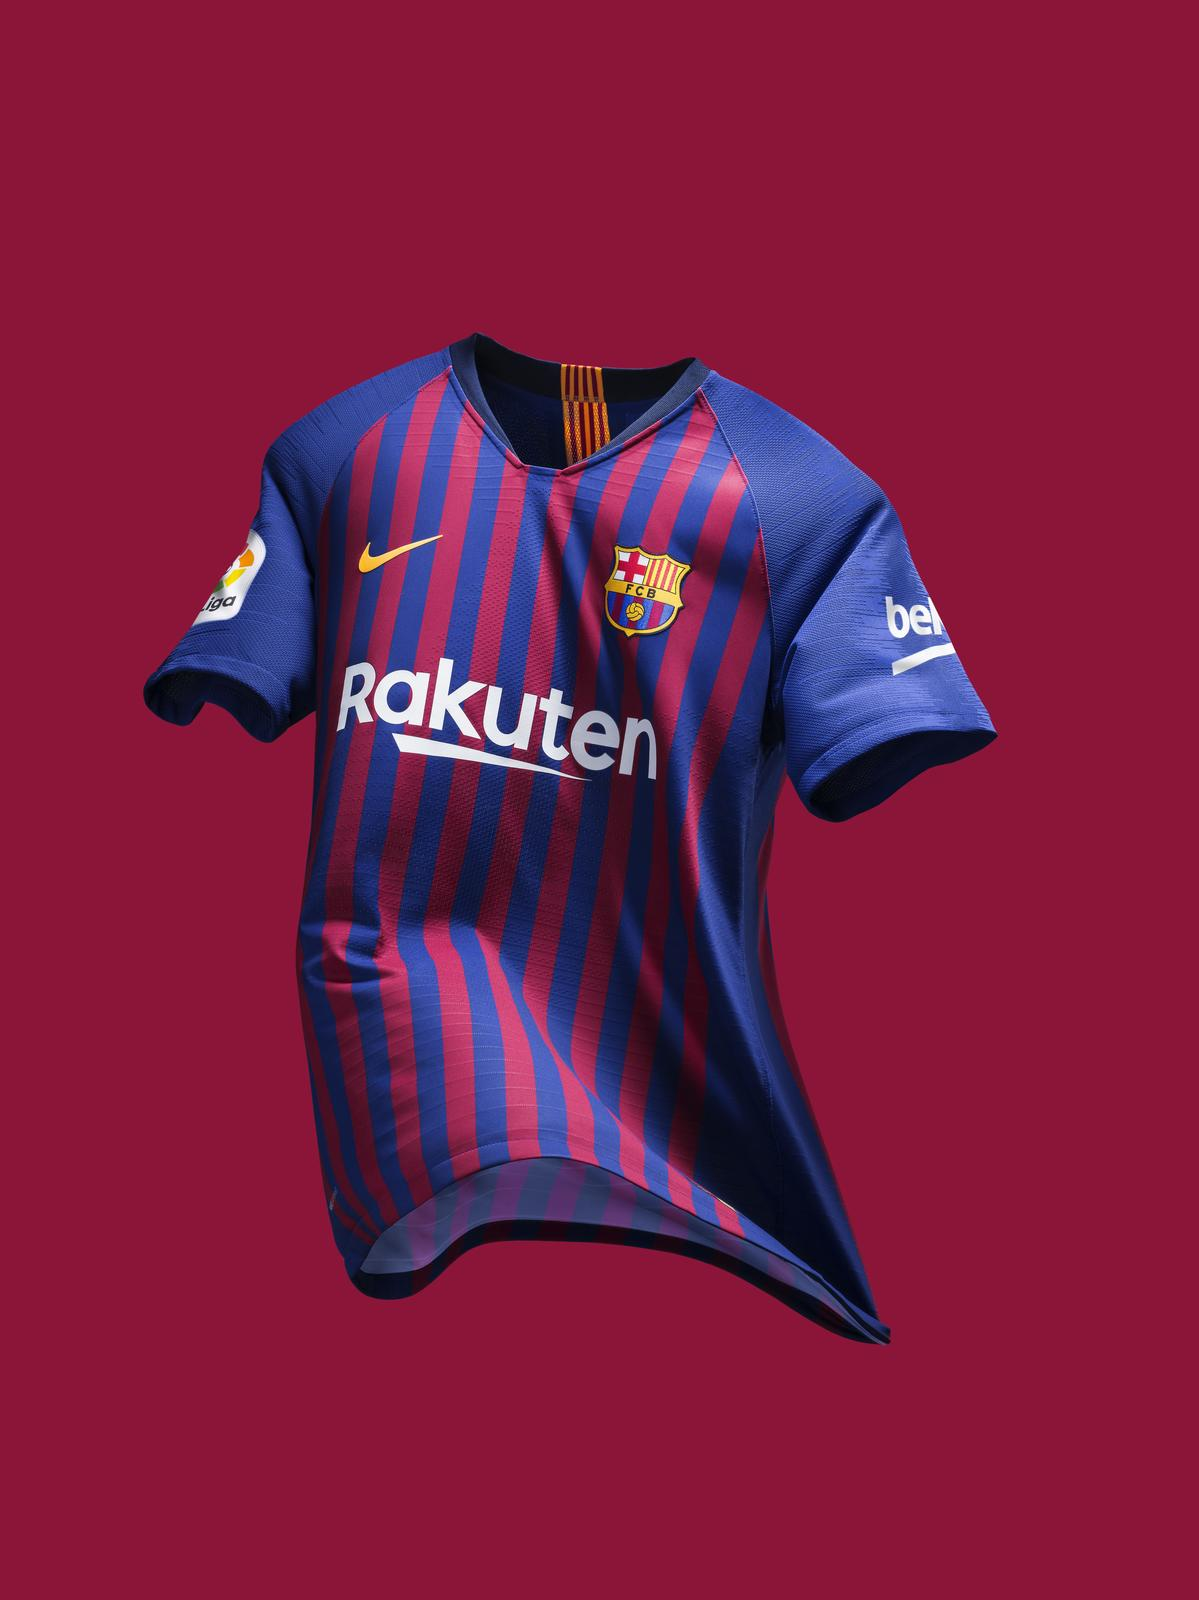 84a105131b5 FC Barcelona's 2018-19 Home Kit Unites the City's 10 Districts ...